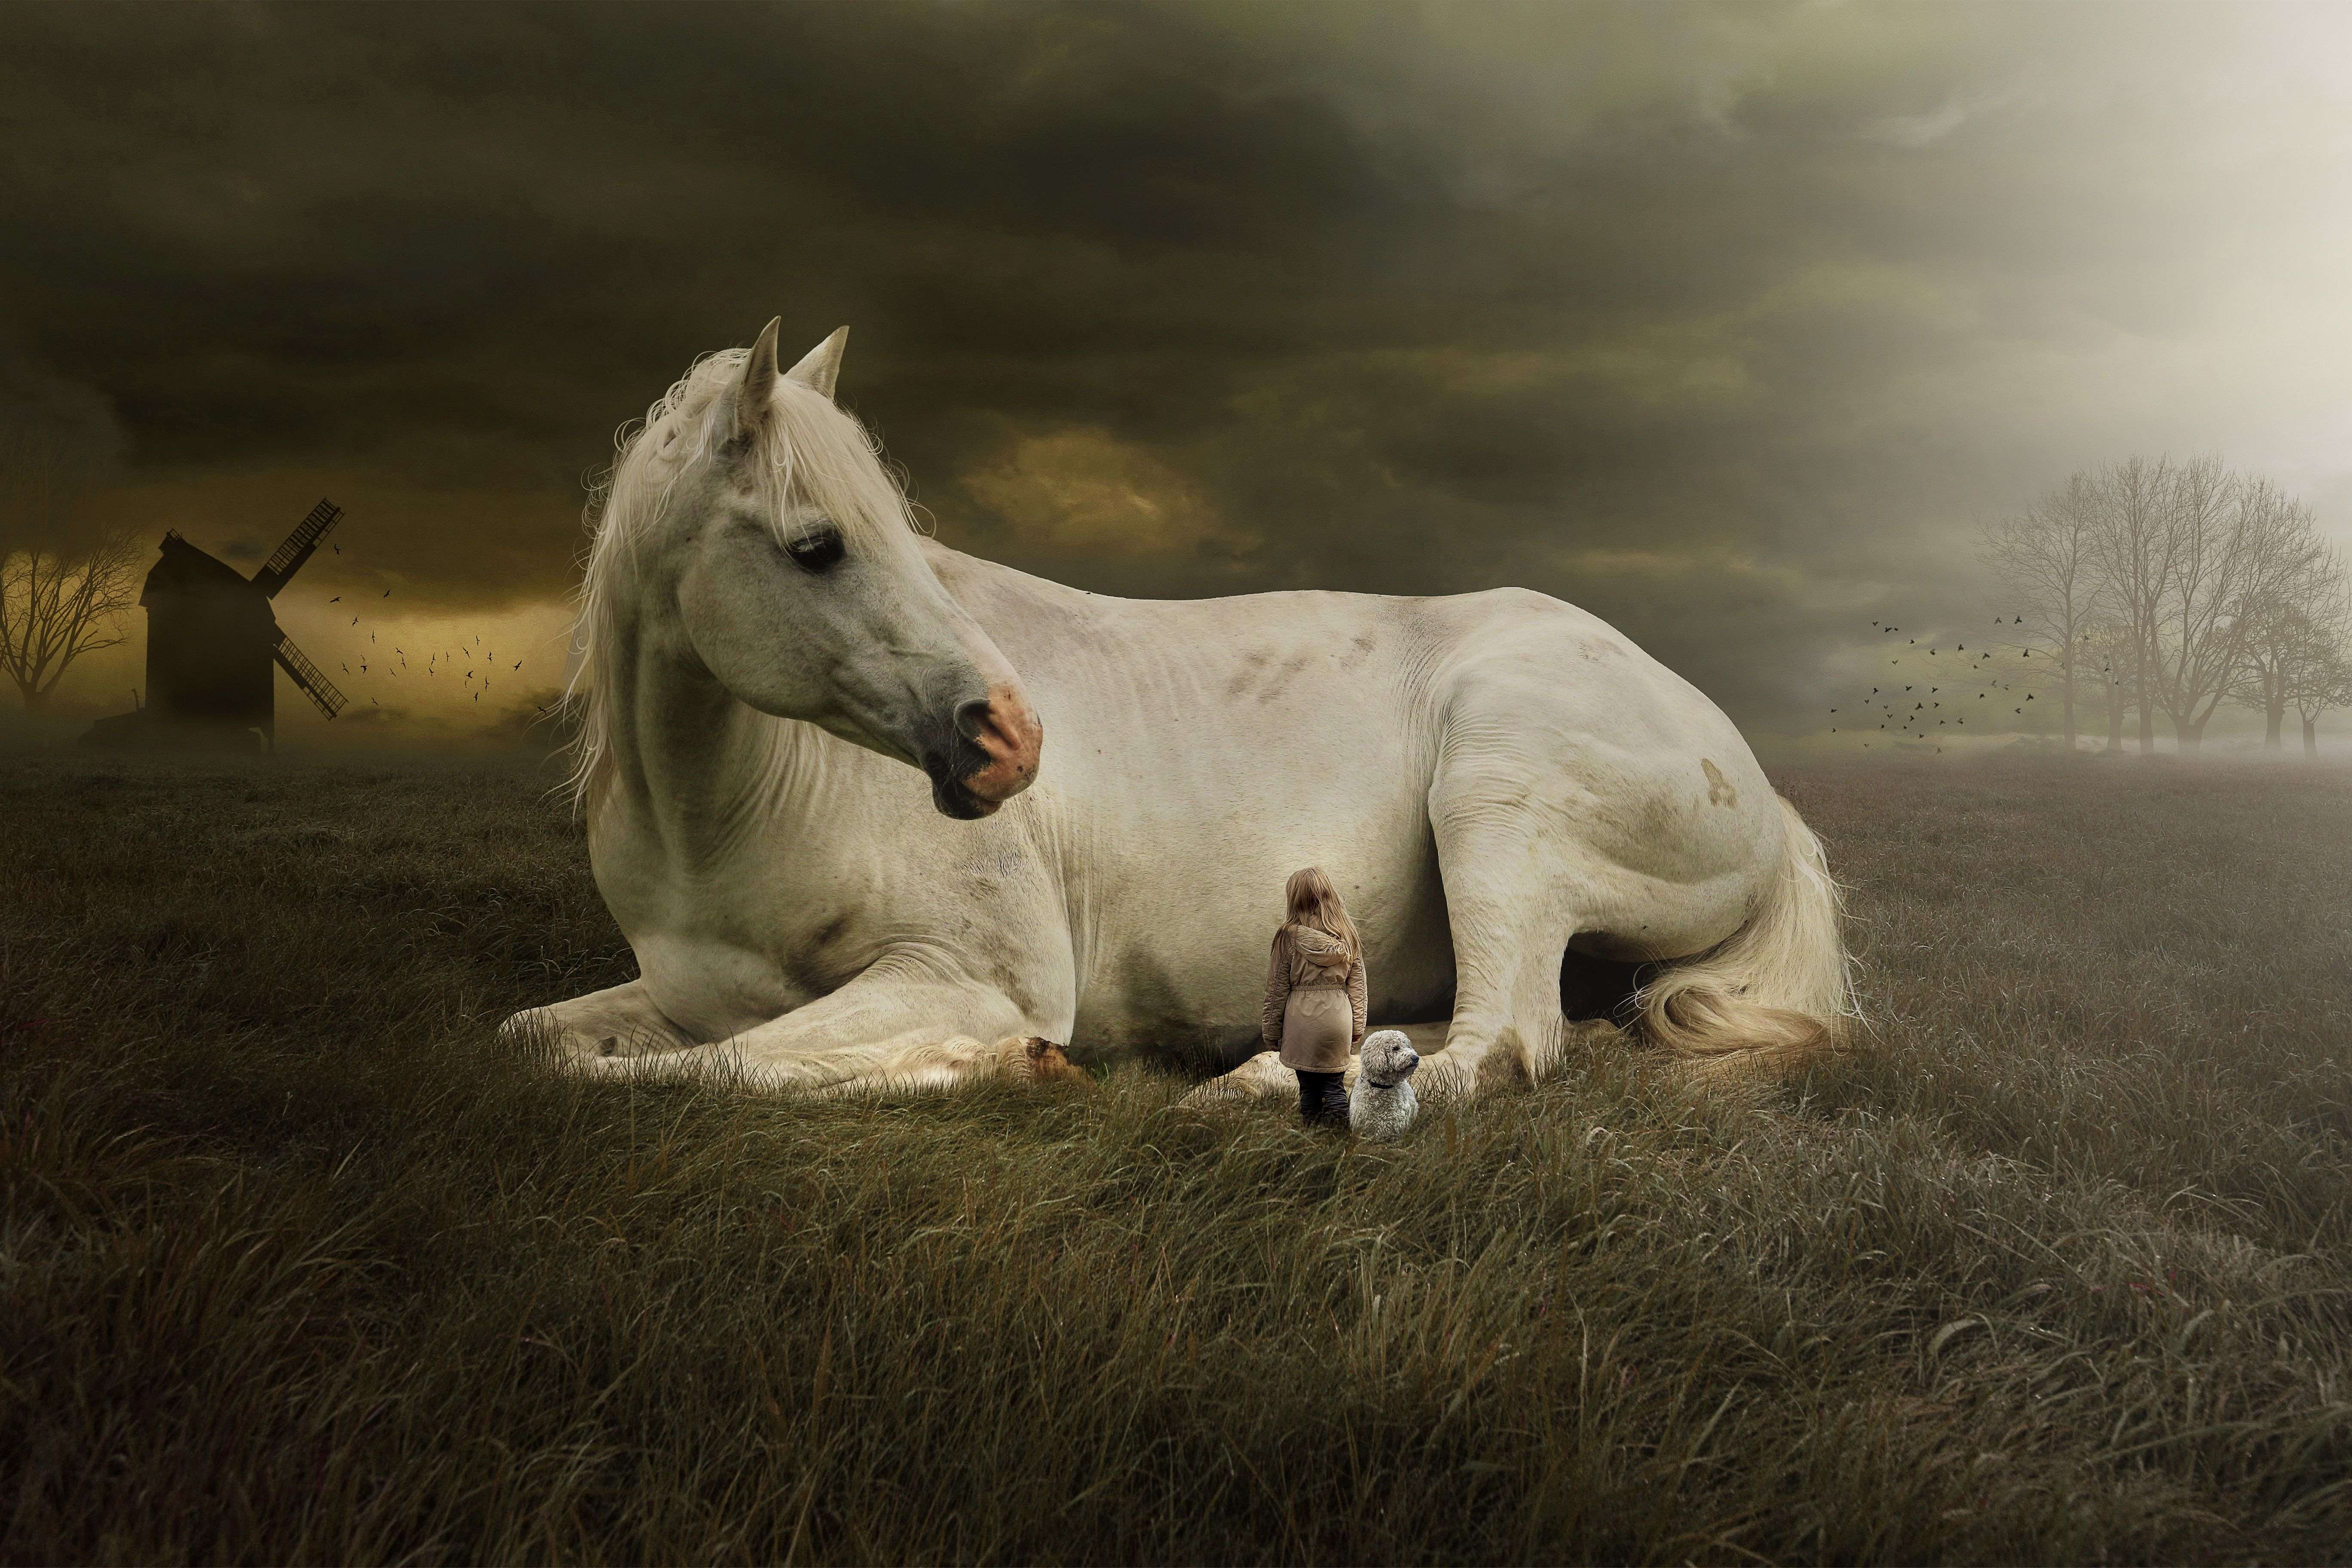 Cute Horse Wallpapers Top Free Cute Horse Backgrounds